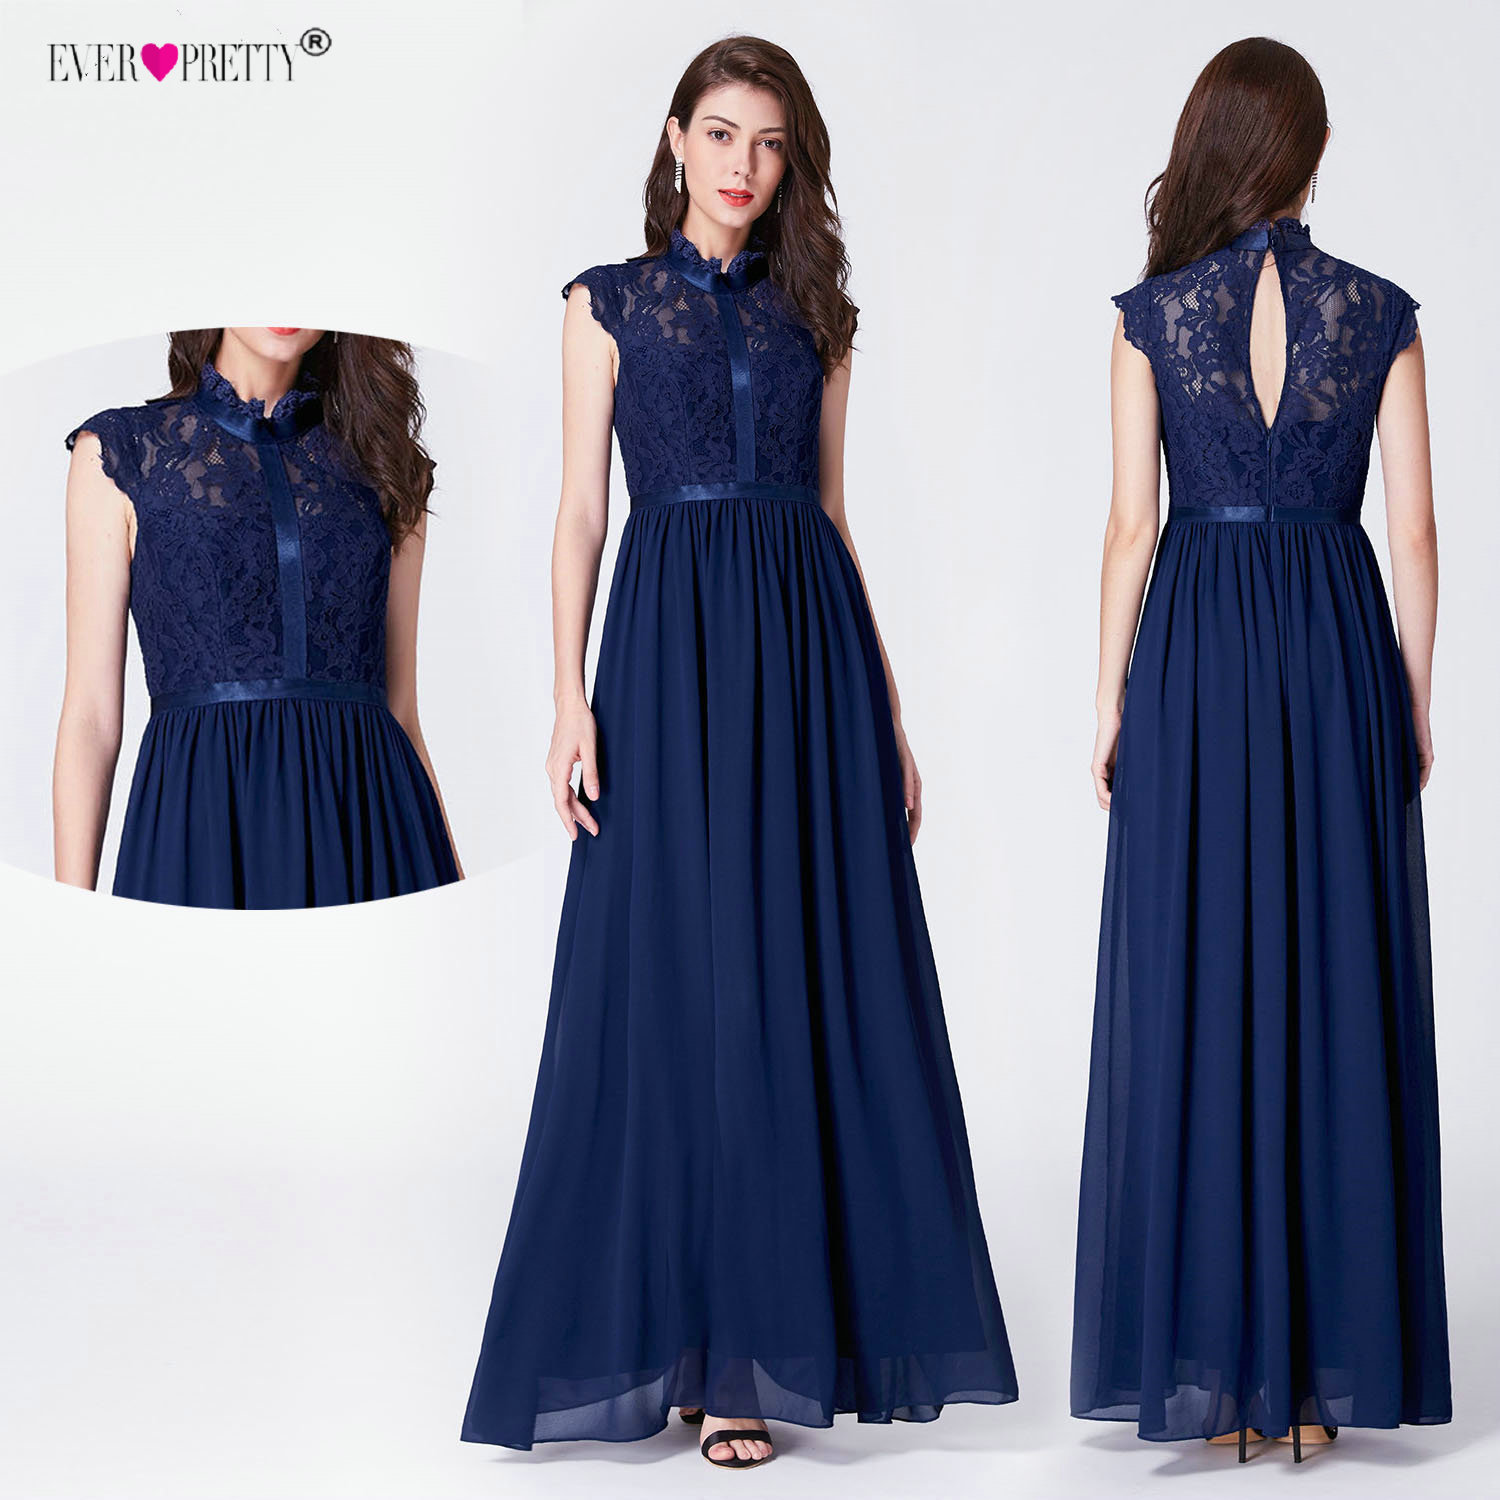 Navy Blue Lace Plus Size   Prom     Dresses   2018 Ever Pretty EZ07696 Elegant Sleeveless Ruffles A-line High Neck Wedding Guest Gowns